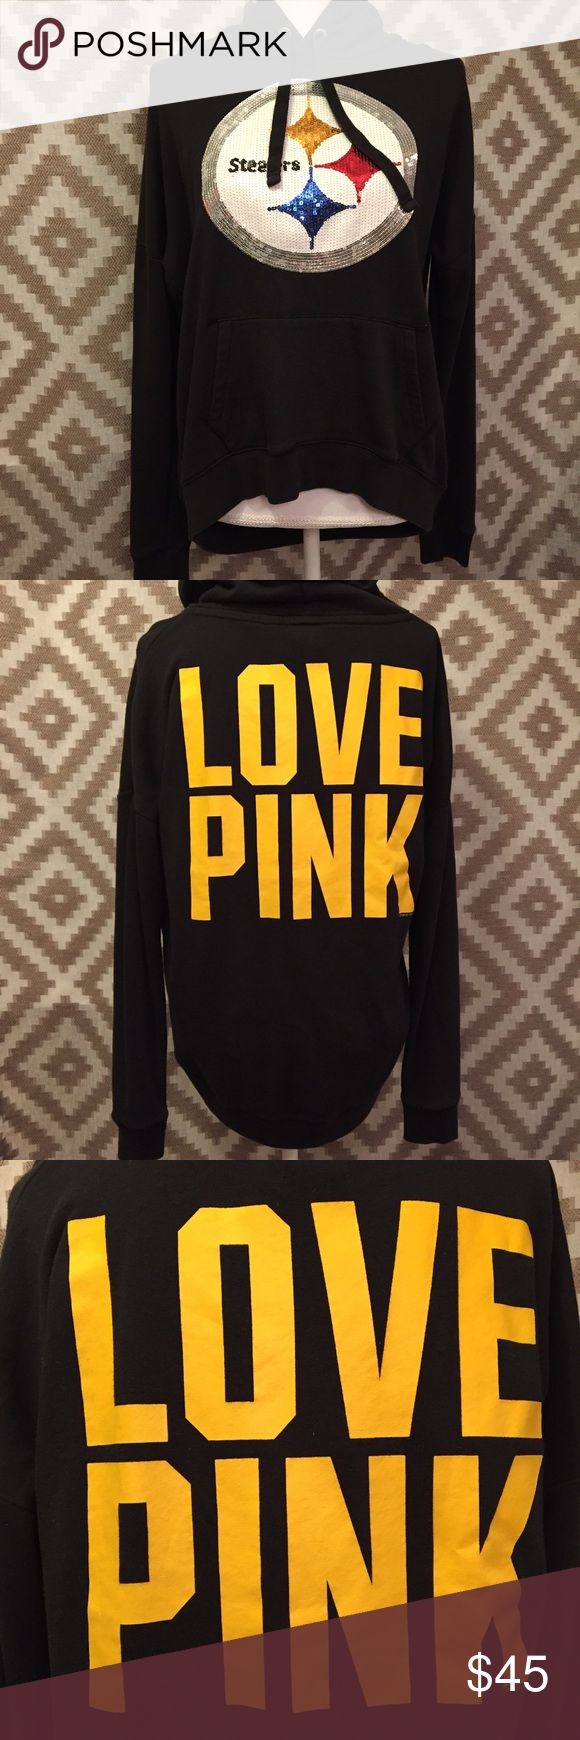 "VS Pink Sequined Steelers Slouchy Hoodie! Perfect condition sequined Victoria's Secret Pink Steelers Slouchy hoodie! It is French terry on the inside rather than the fuzzy material that is usually in hoodies! Slouchy design so the back is longer than the front! Back has a large yellow graphic that reads ""Love Pink."" Armpit to armpit measurement is 25 inches lying flat, length from shoulder to bottom is 23 inches in the front, and 26 inches in the back, sleeve length from armpit is 17 1/2…"